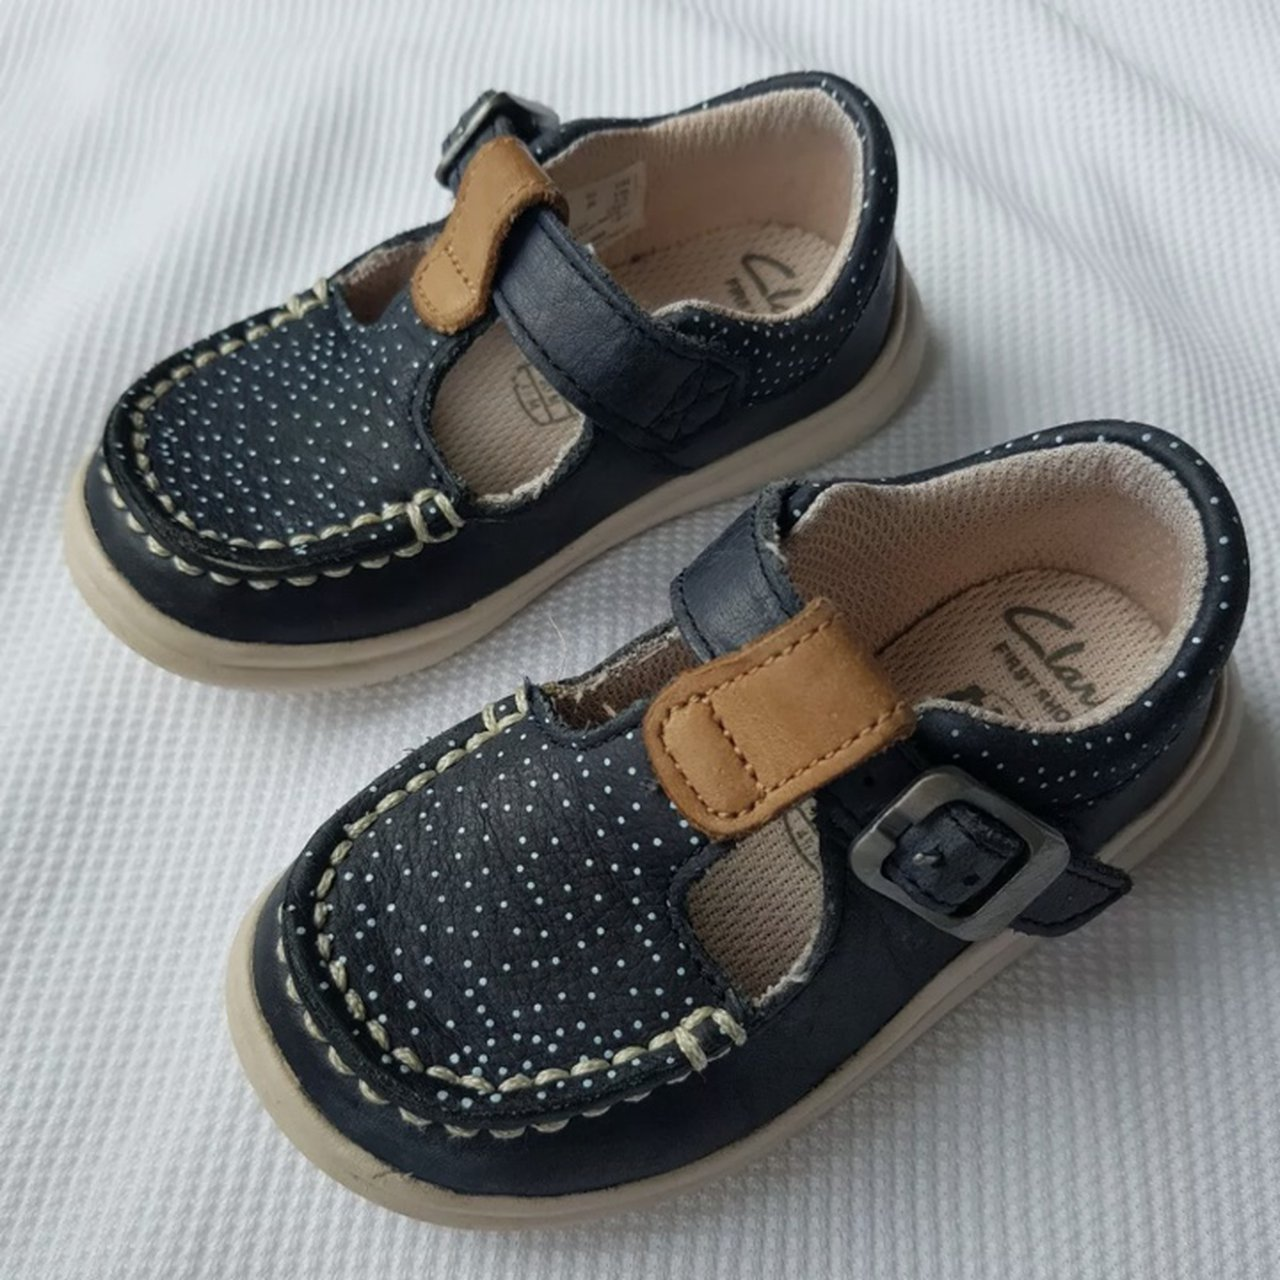 Clarks Baby Shoes - size 4F Crest Rosa